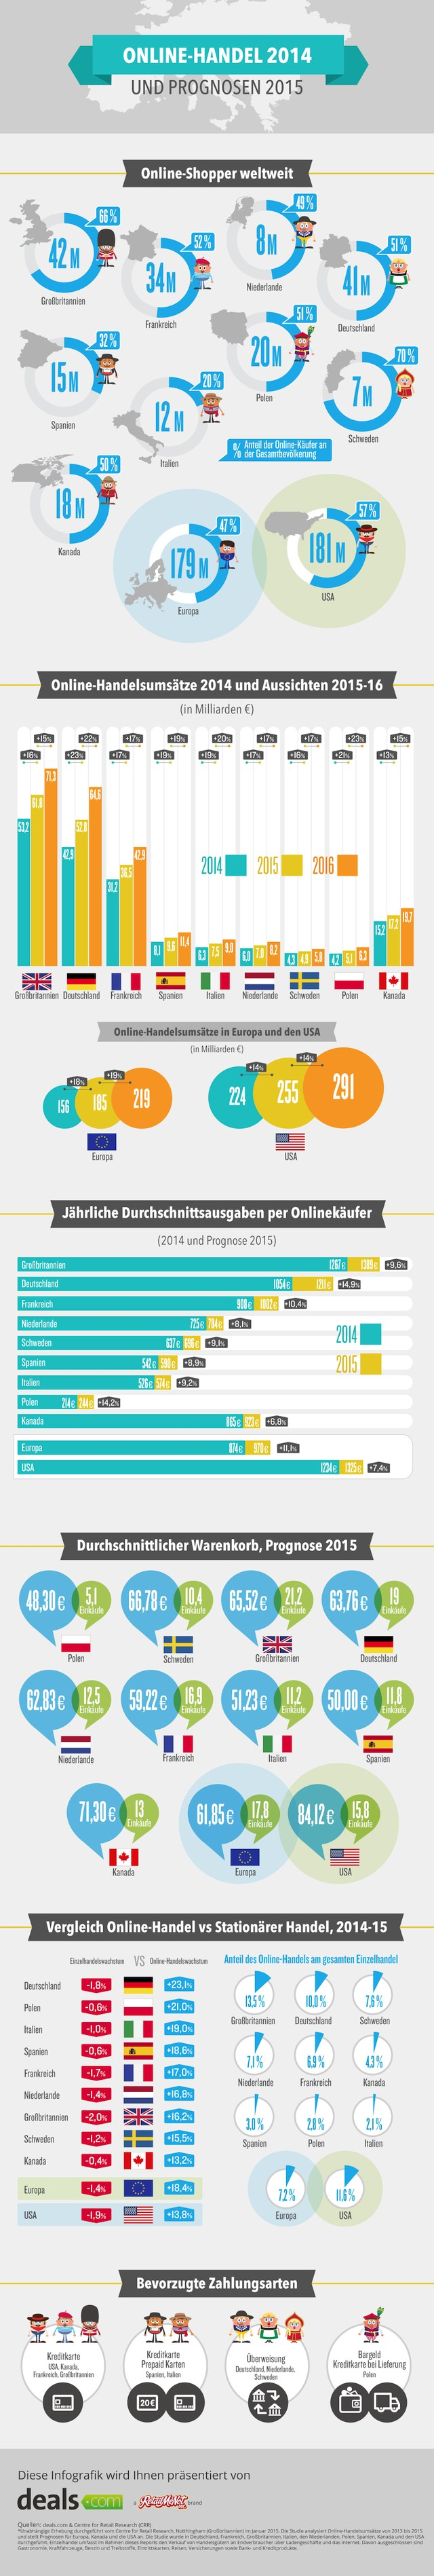 infografik dealsdotcom e-commerce deutschland